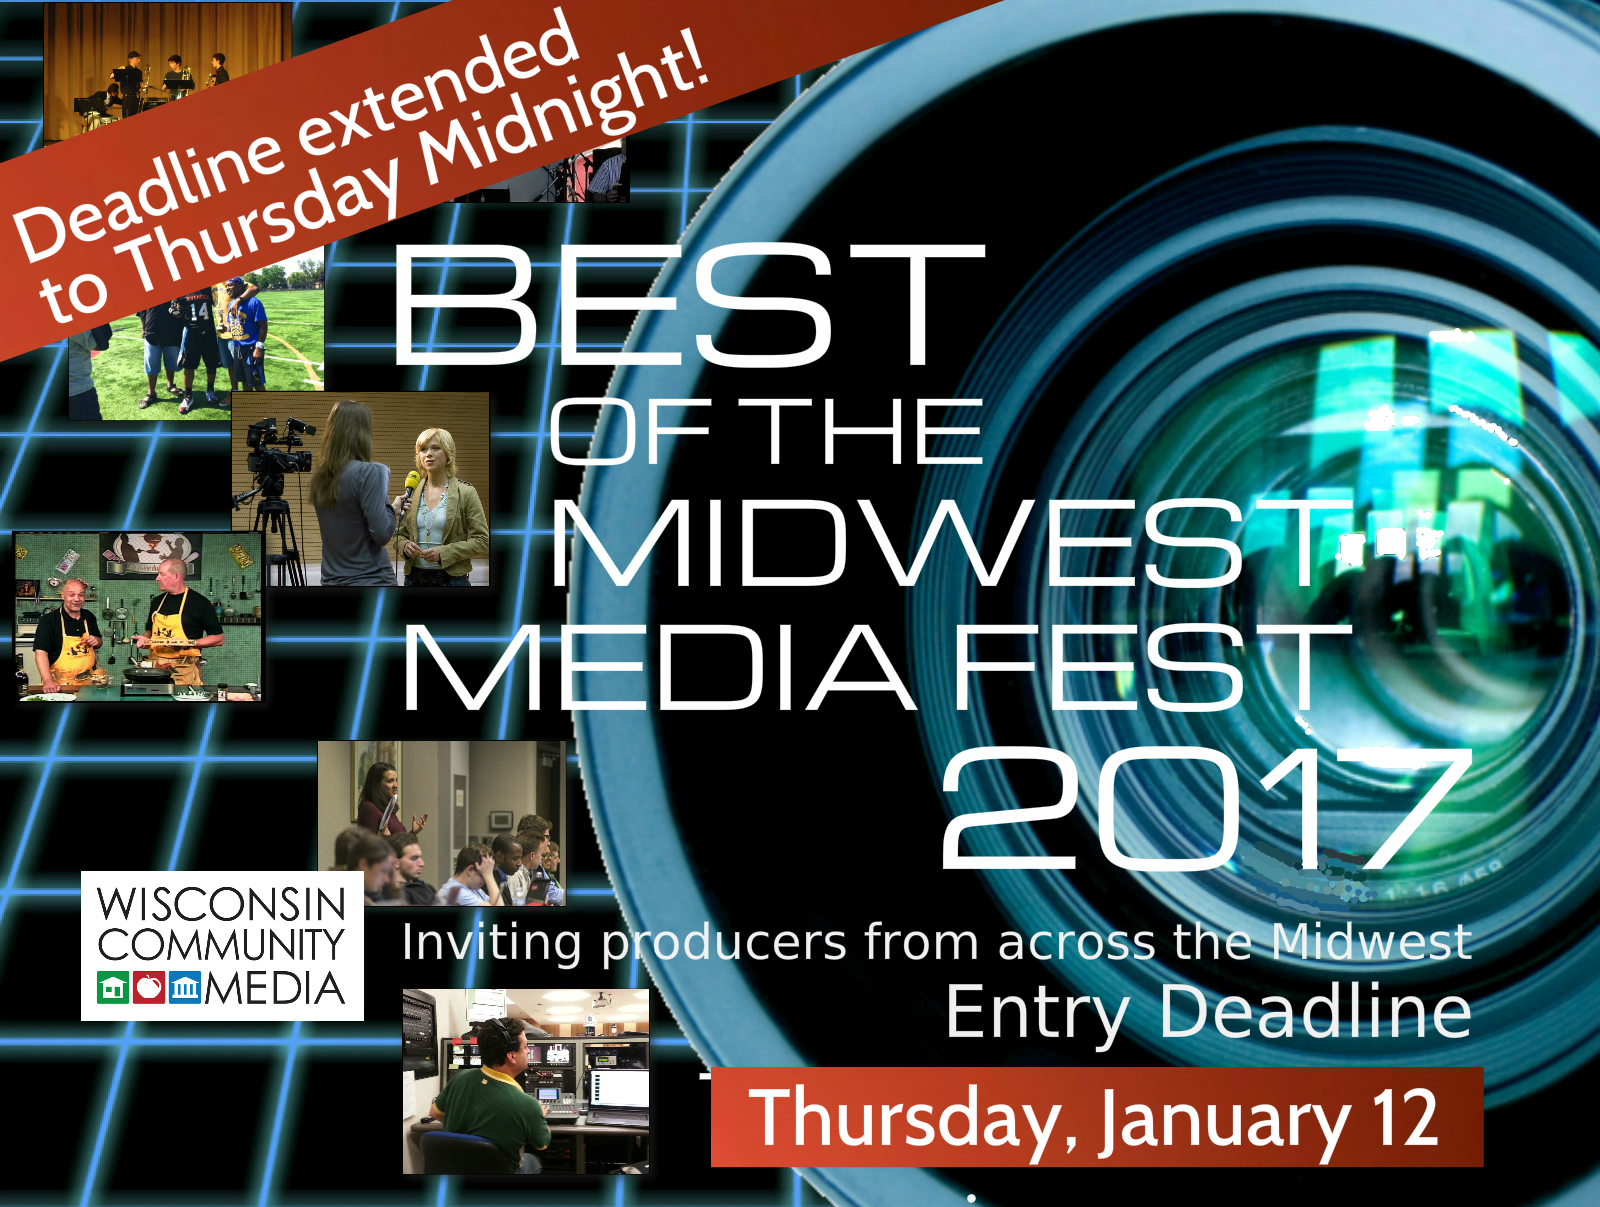 Best of the MidWest Media Fest